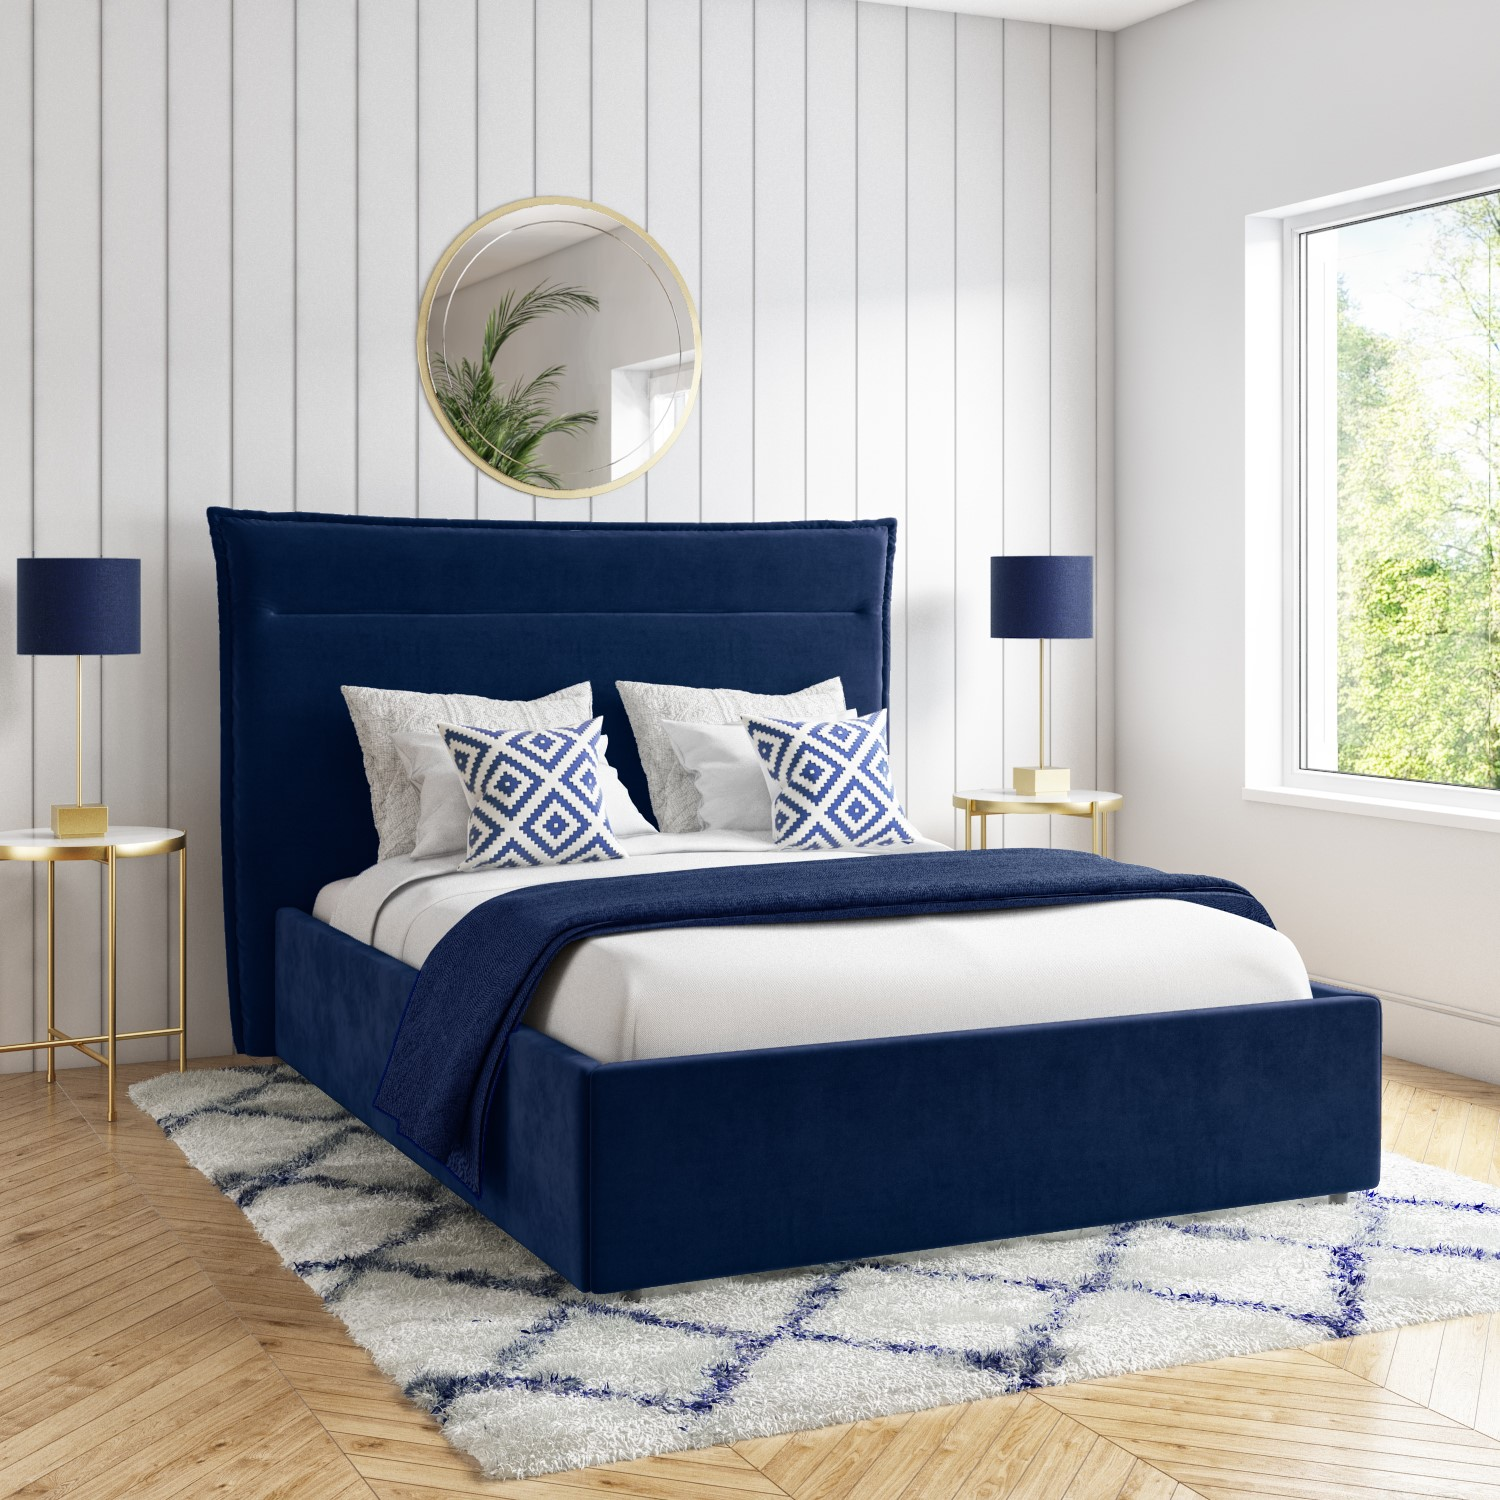 Maddox Navy Blue Velvet King Size Bed Frame With Cushioned Headboard Furniture123